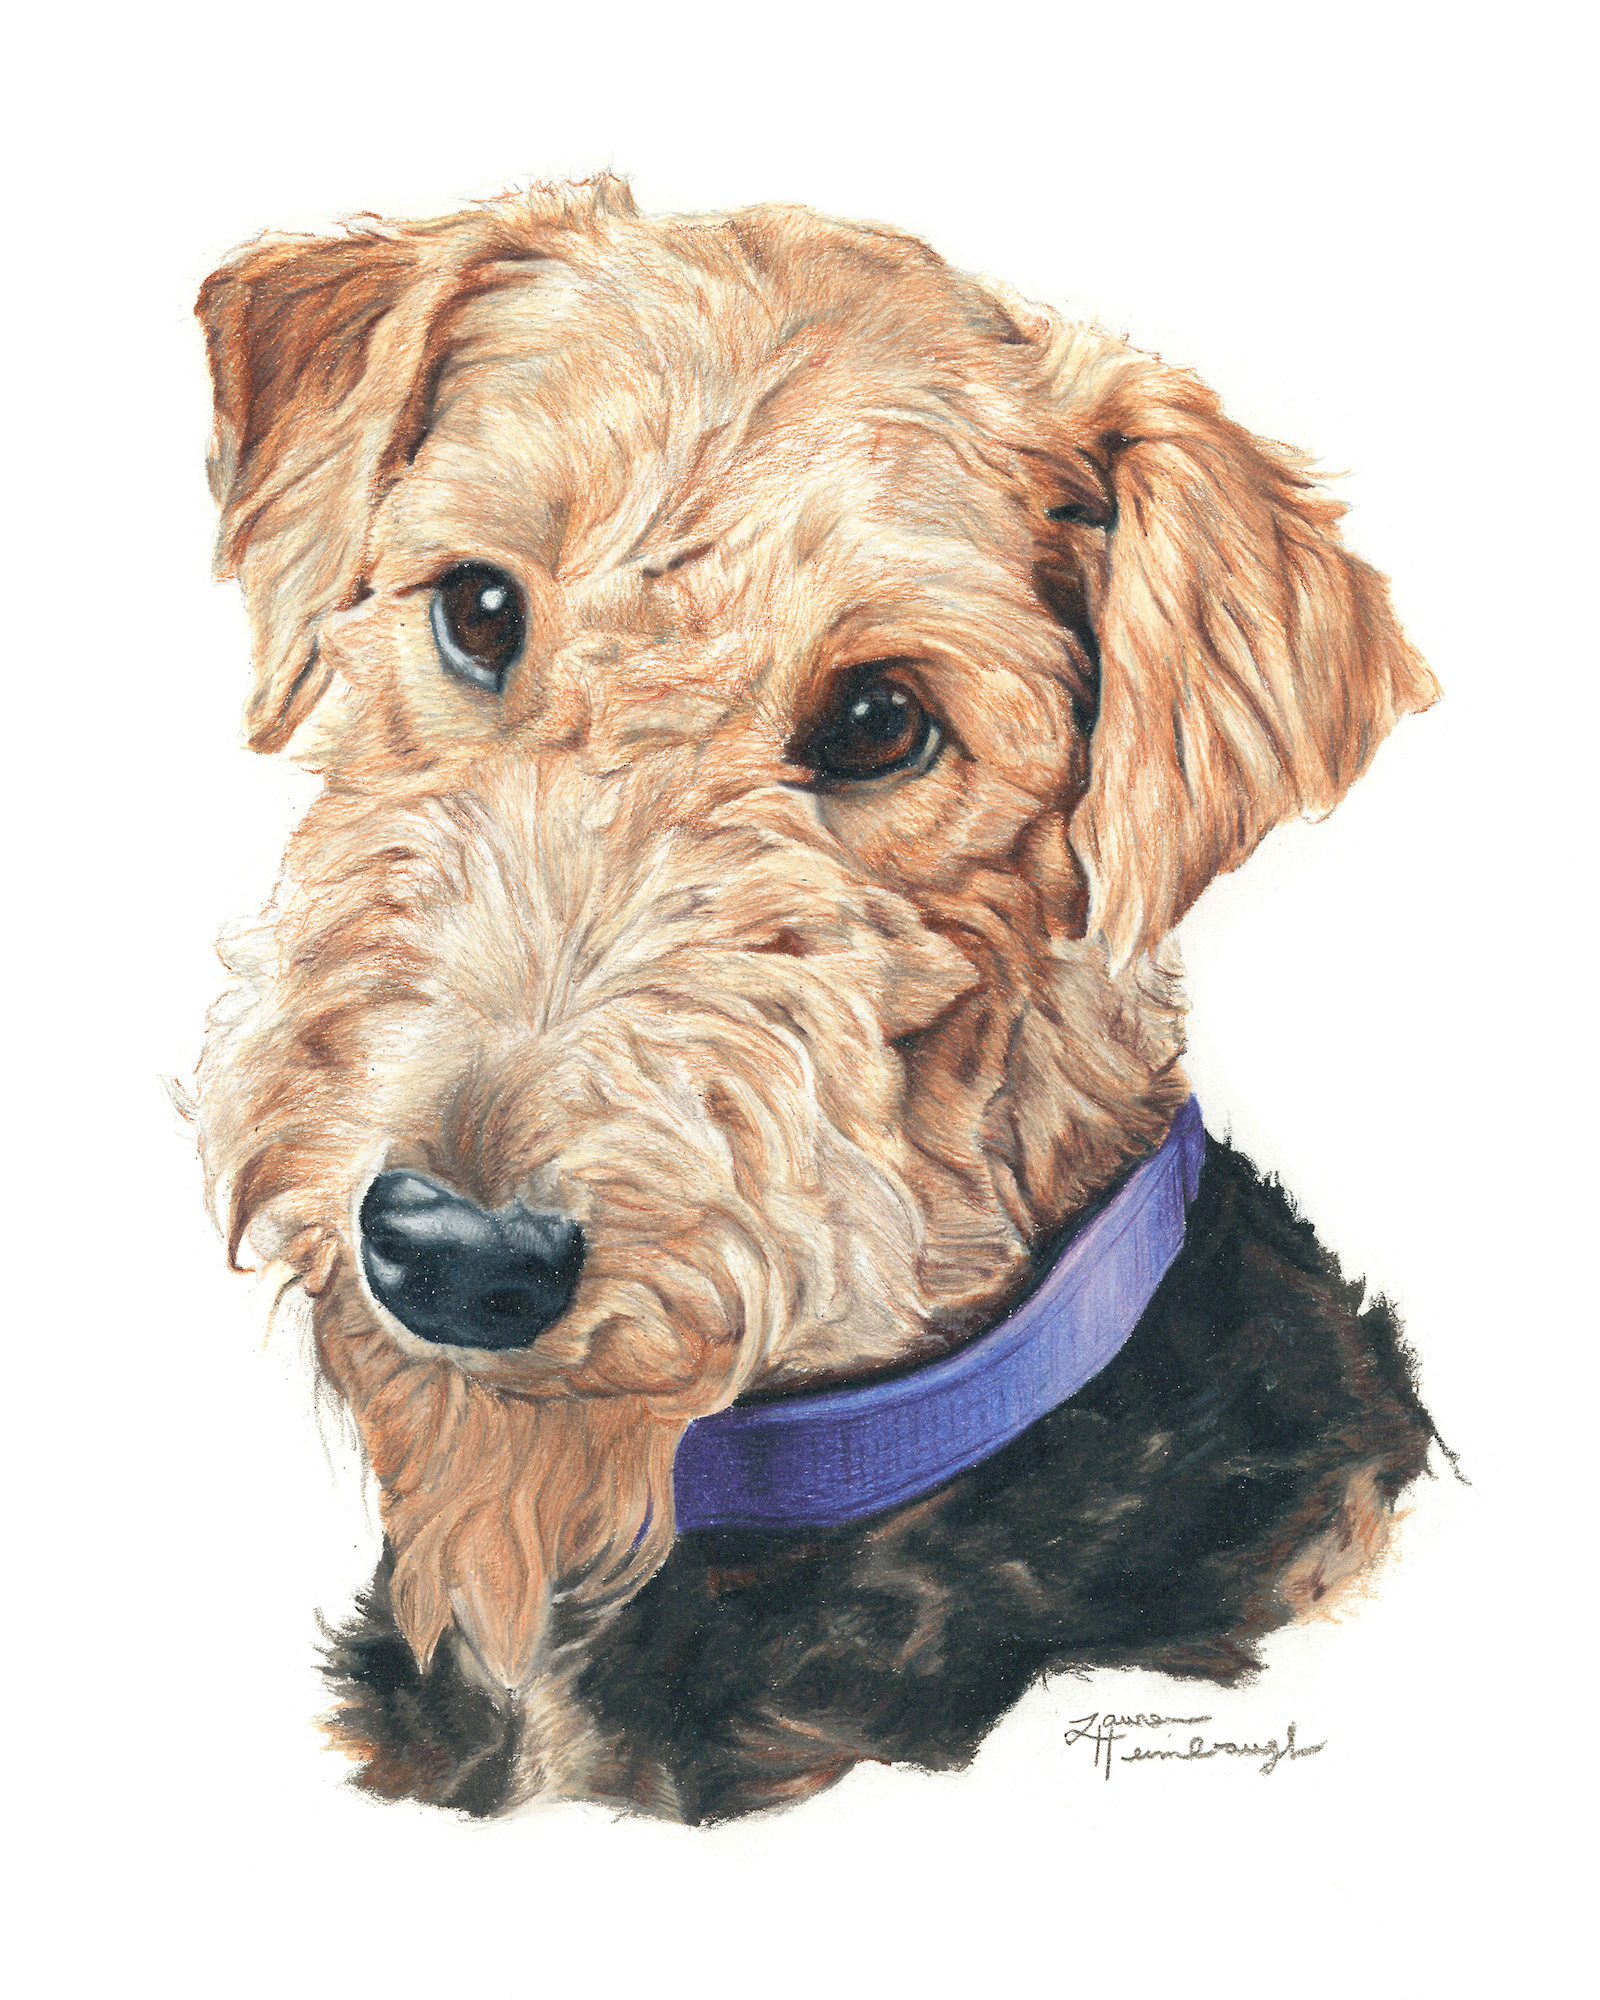 Willow the Airedale Terrier (2015)